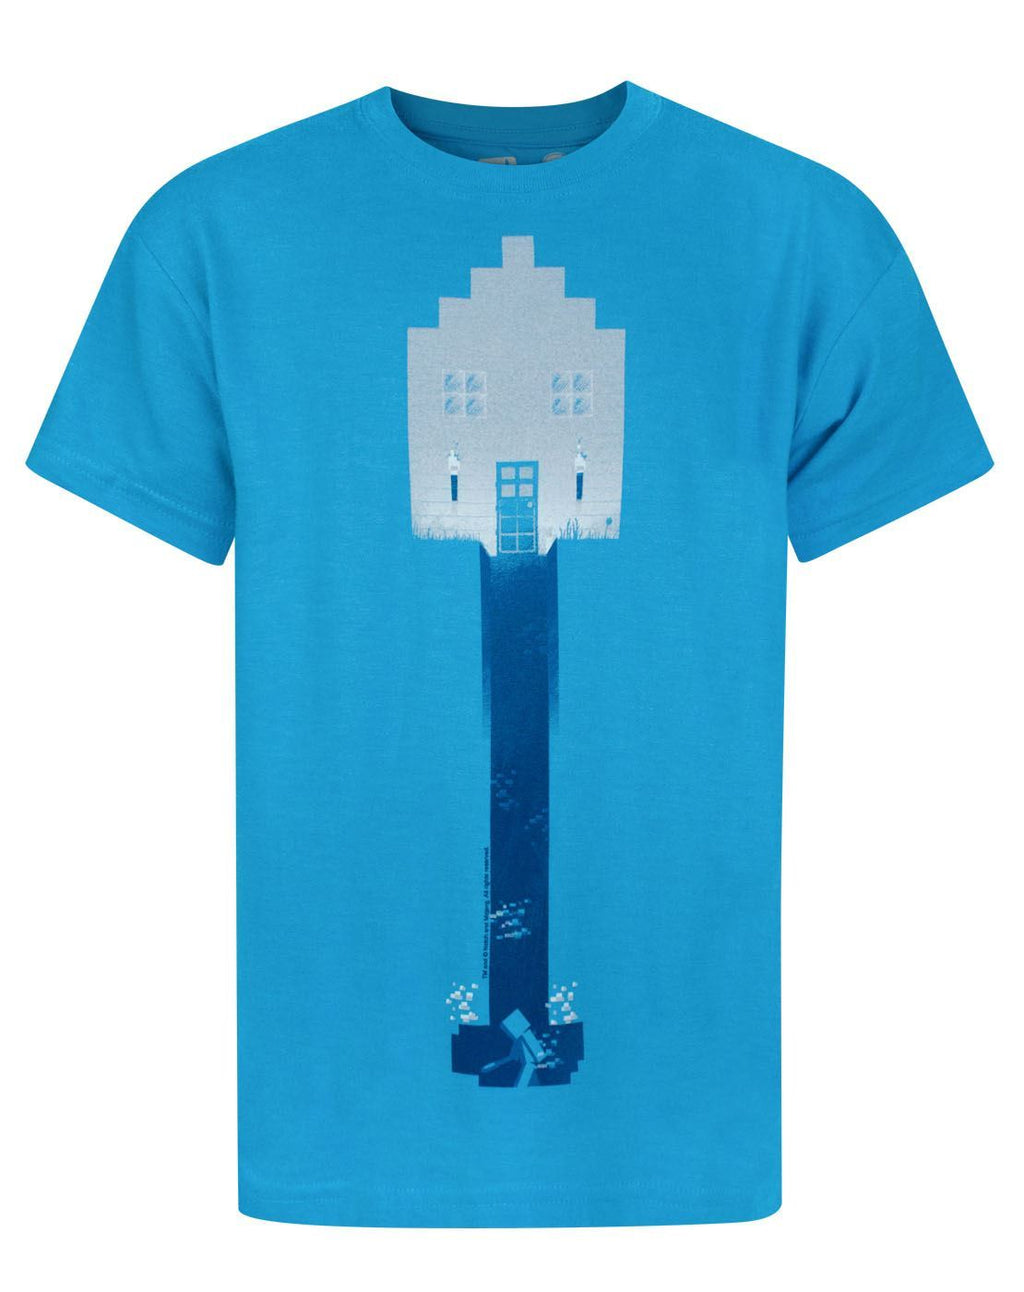 Minecraft Shovel Boy's T-Shirt